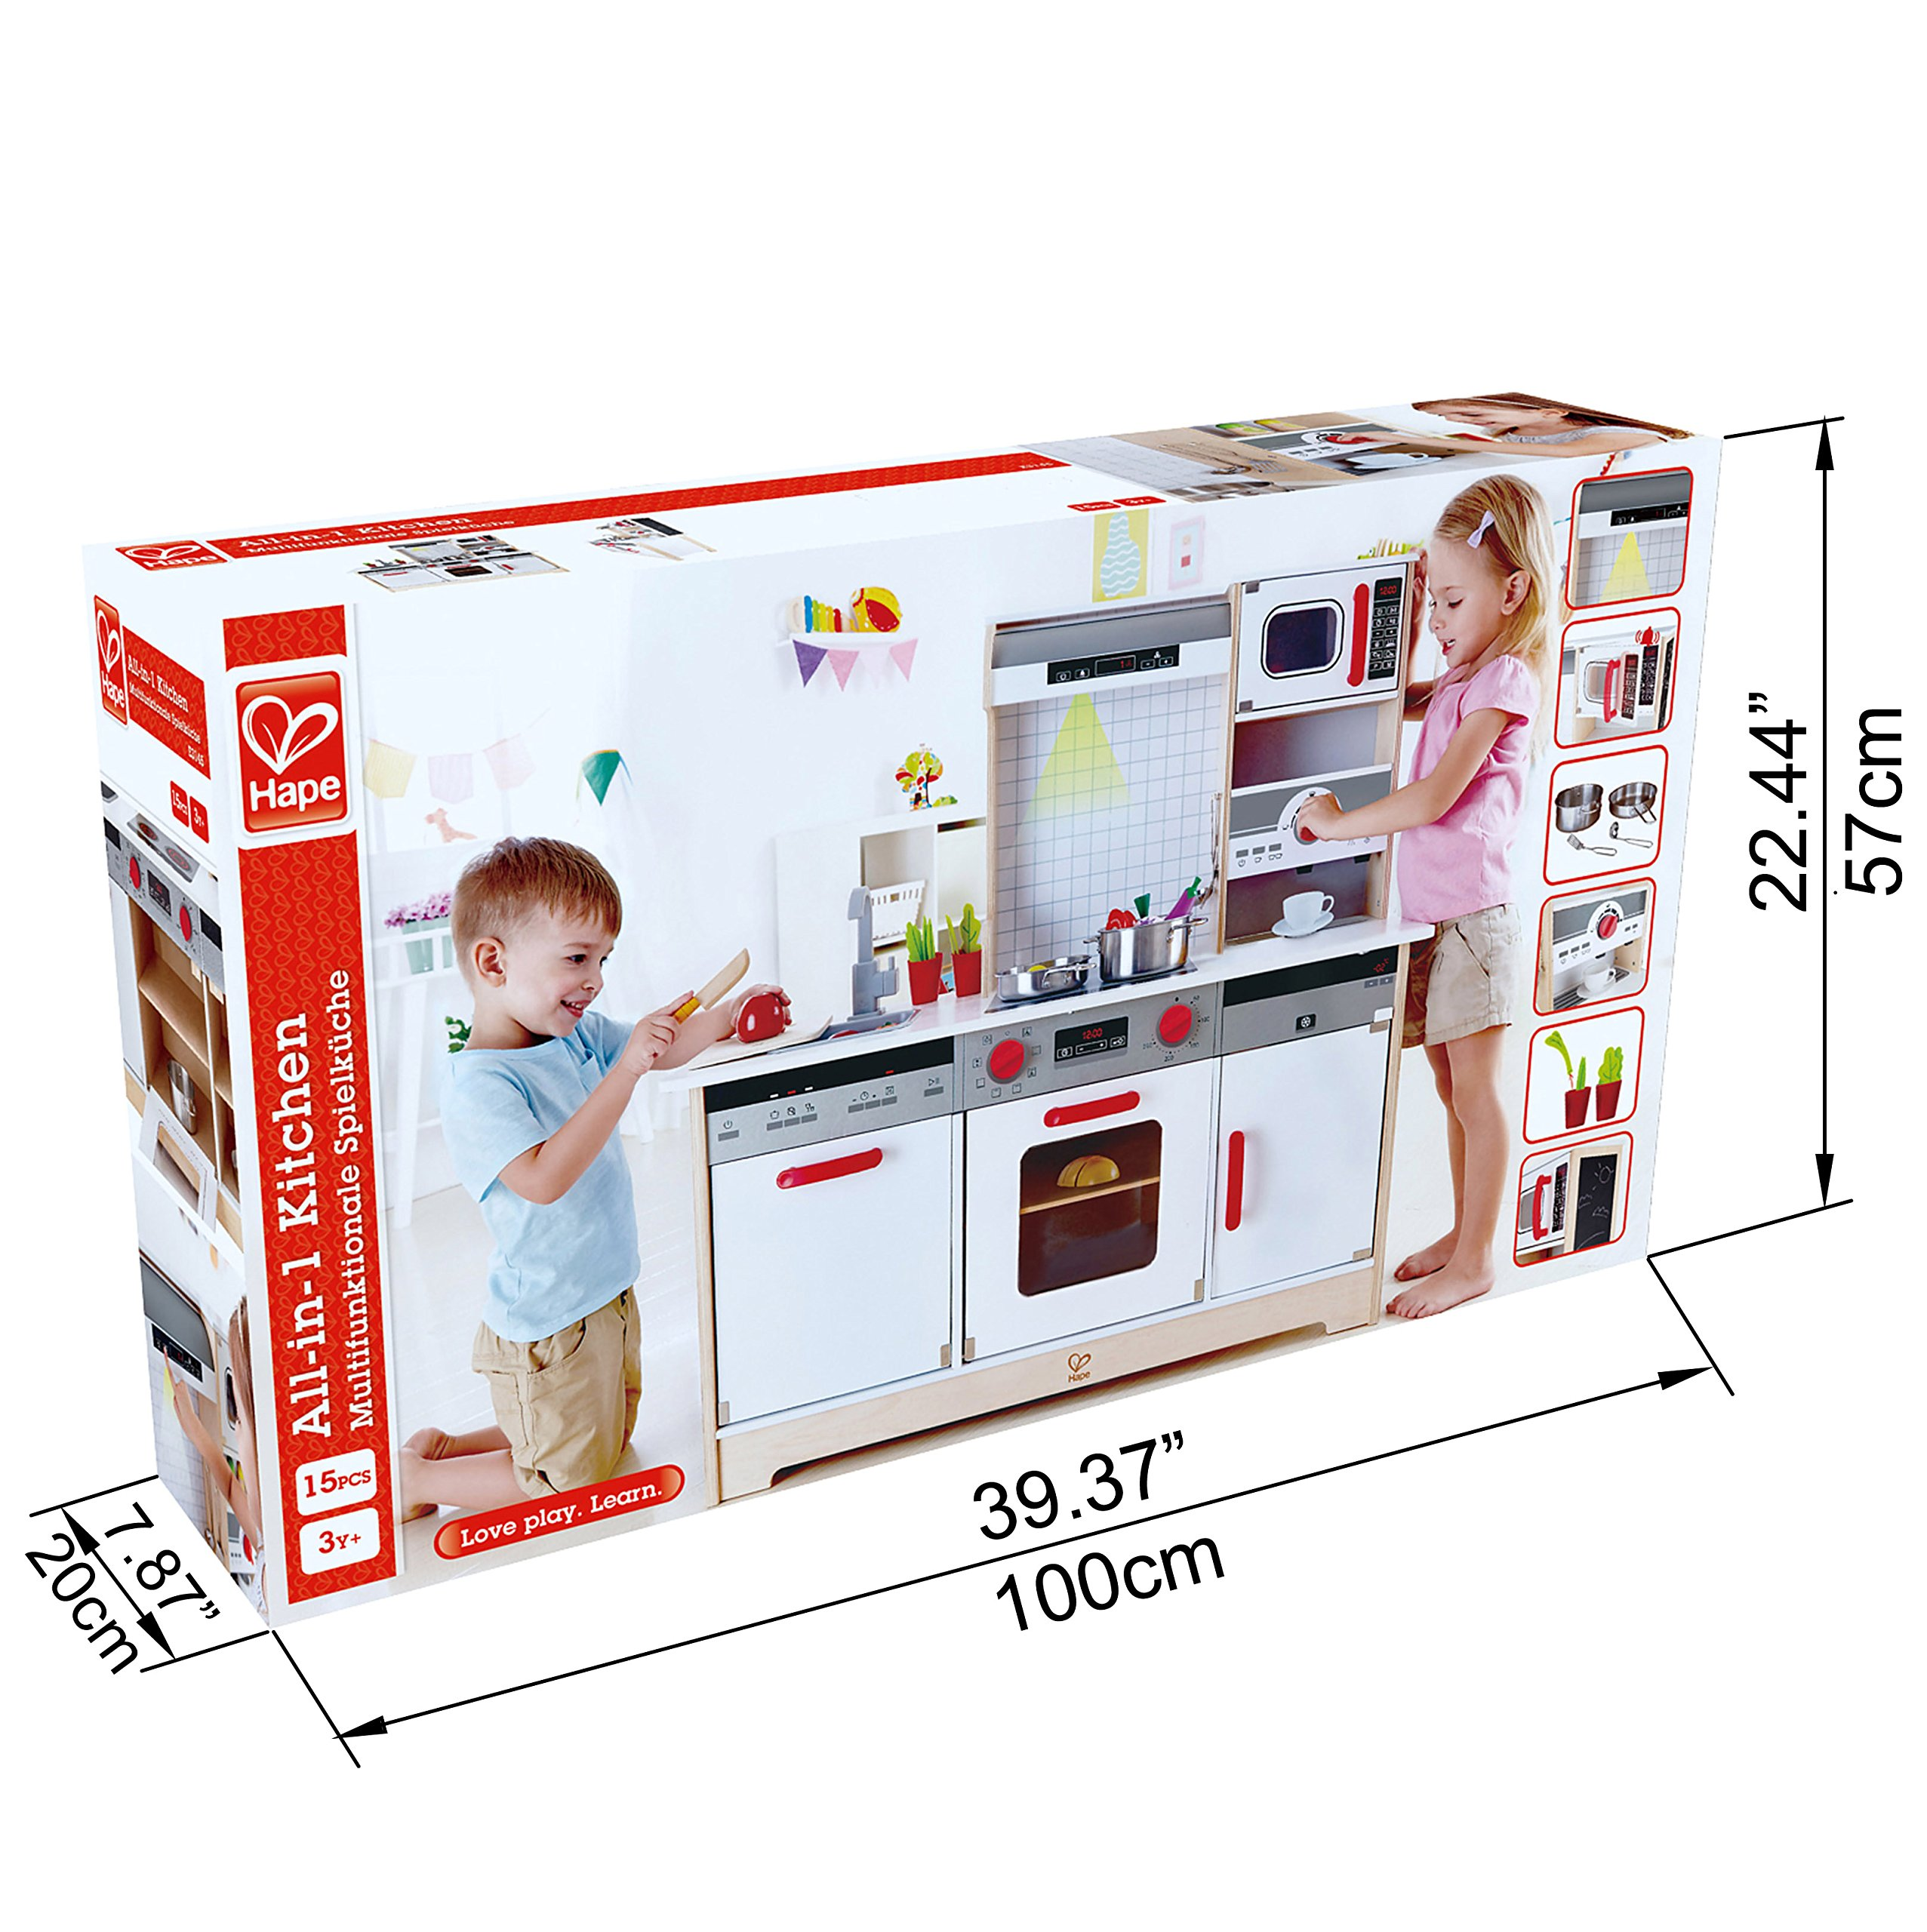 Hape Kids All-in-1 Wooden Play Kitchen with Accessories